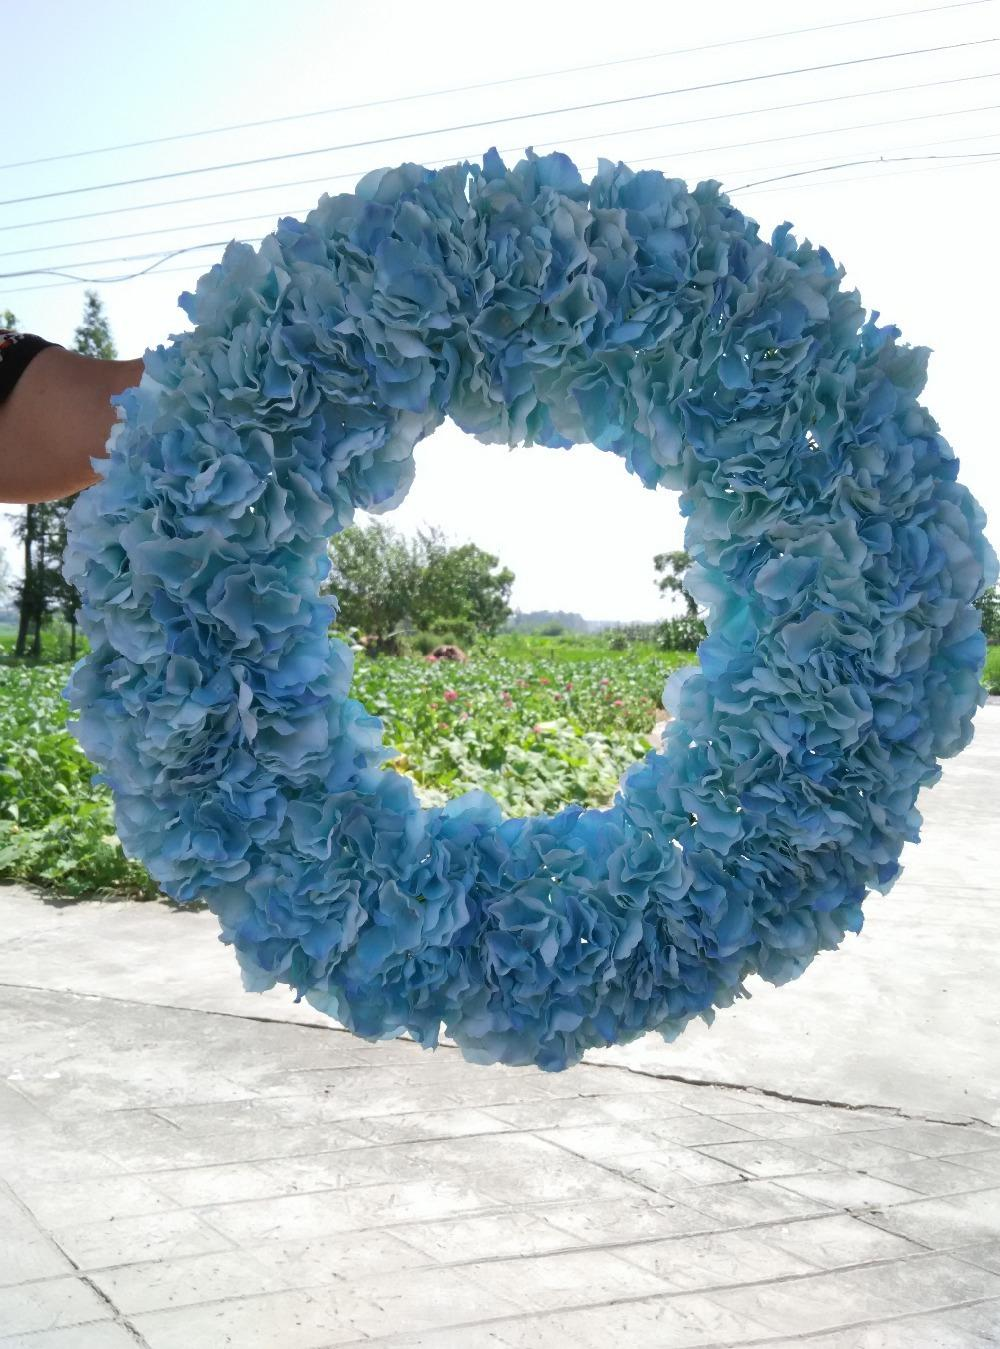 2018 Skyblue Hydrangea Wreaths Front Door Wreath 20 Inches Beach Wedding  Party Birthday Decoration Flowers From Prettyxiu, $112.57 | Dhgate.Com